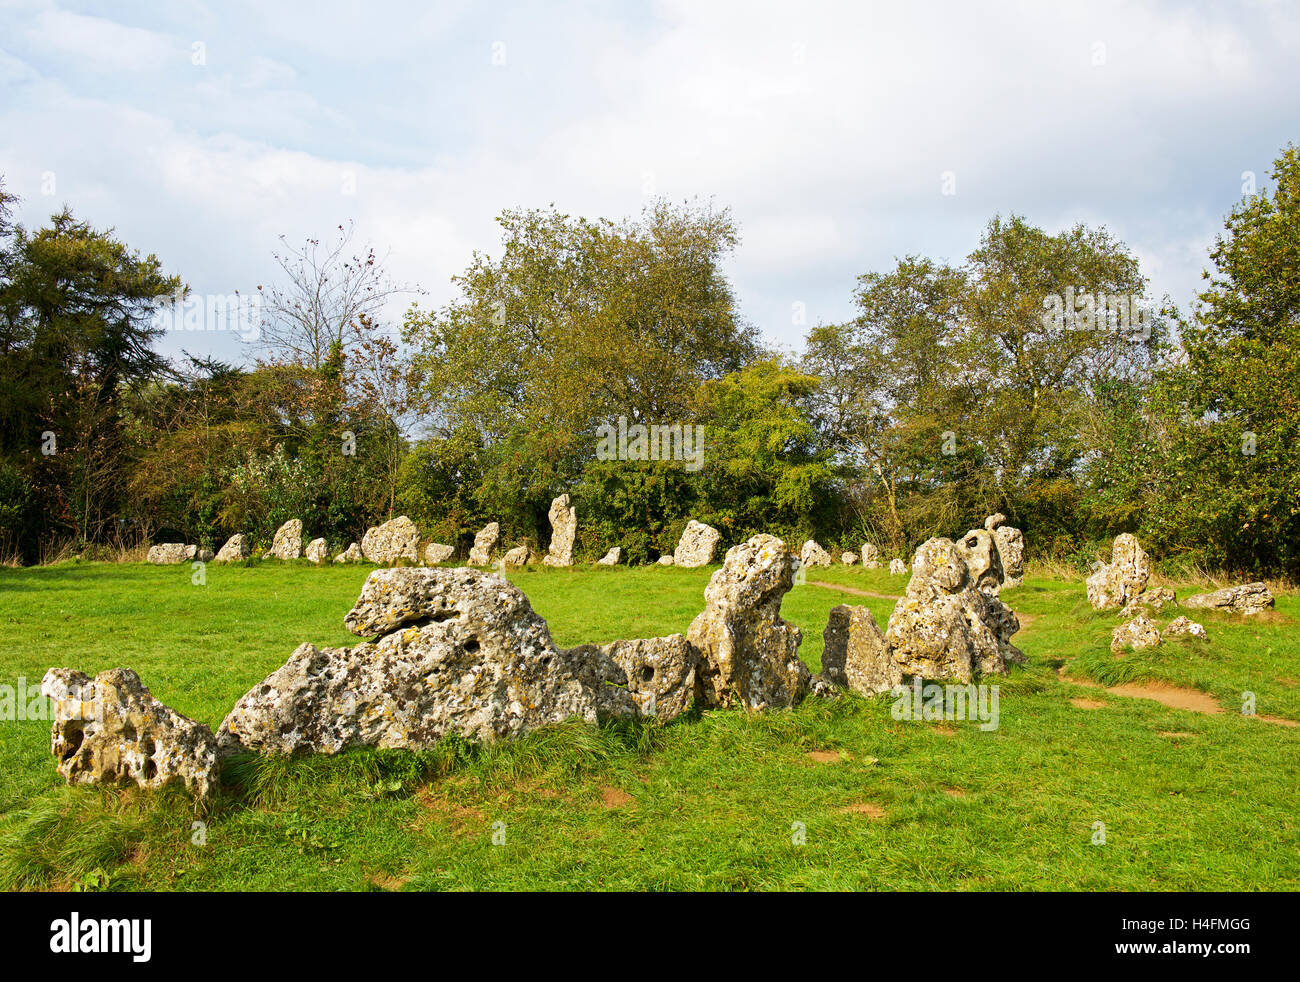 The Rollright Stones, a stone circle near Long Compton, on the border of Oxfordshire and Warwickshire, England UK - Stock Image